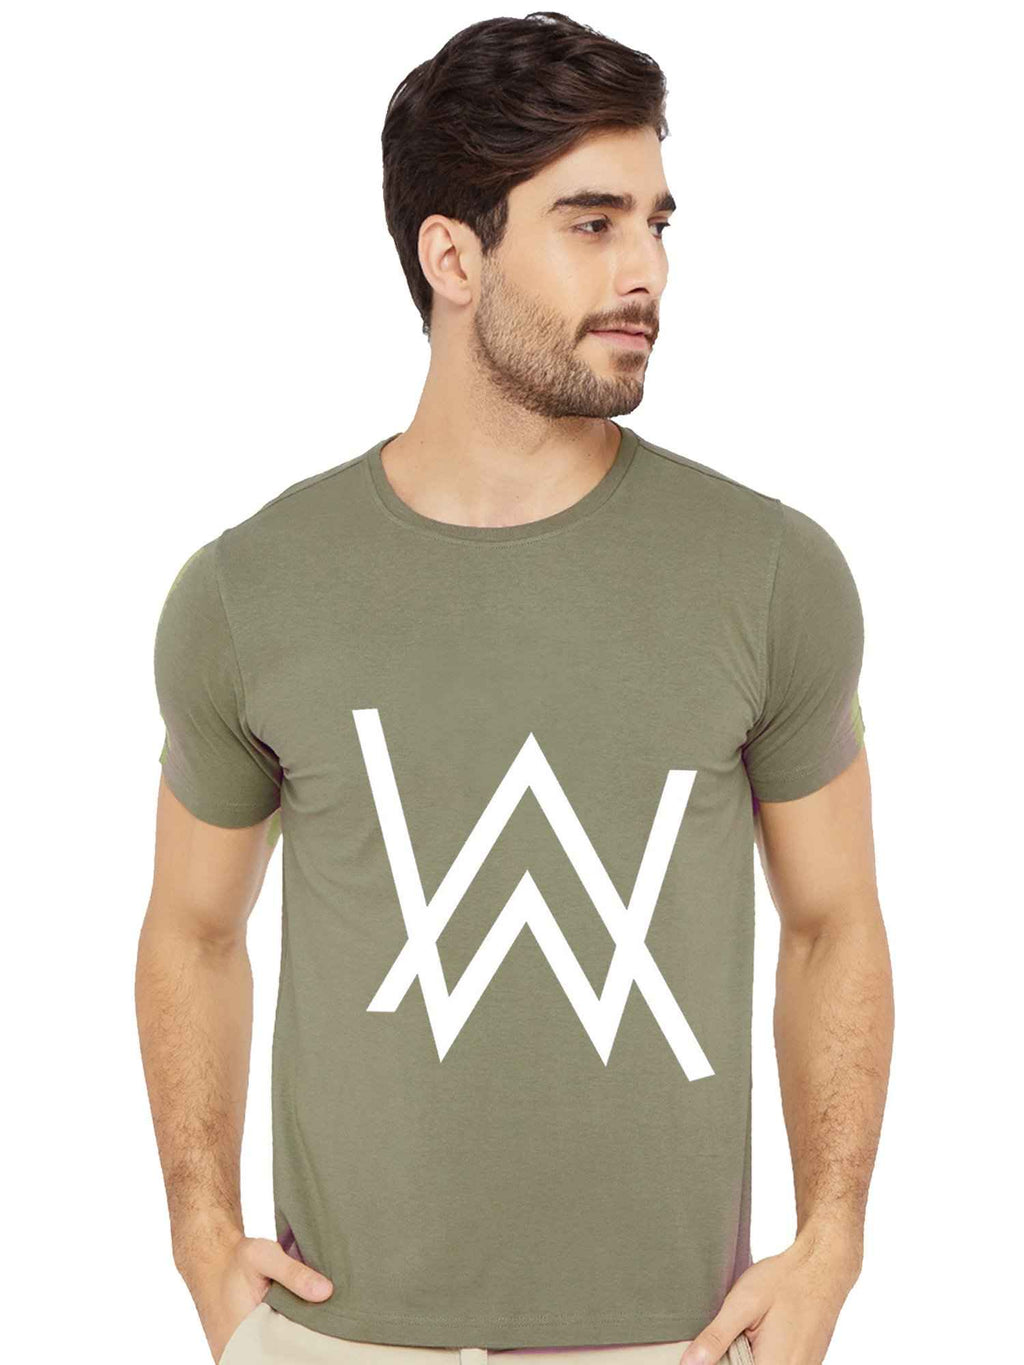 Glow In Dark Alan Walker Logo Half Sleeve Tshirt - bluehaat